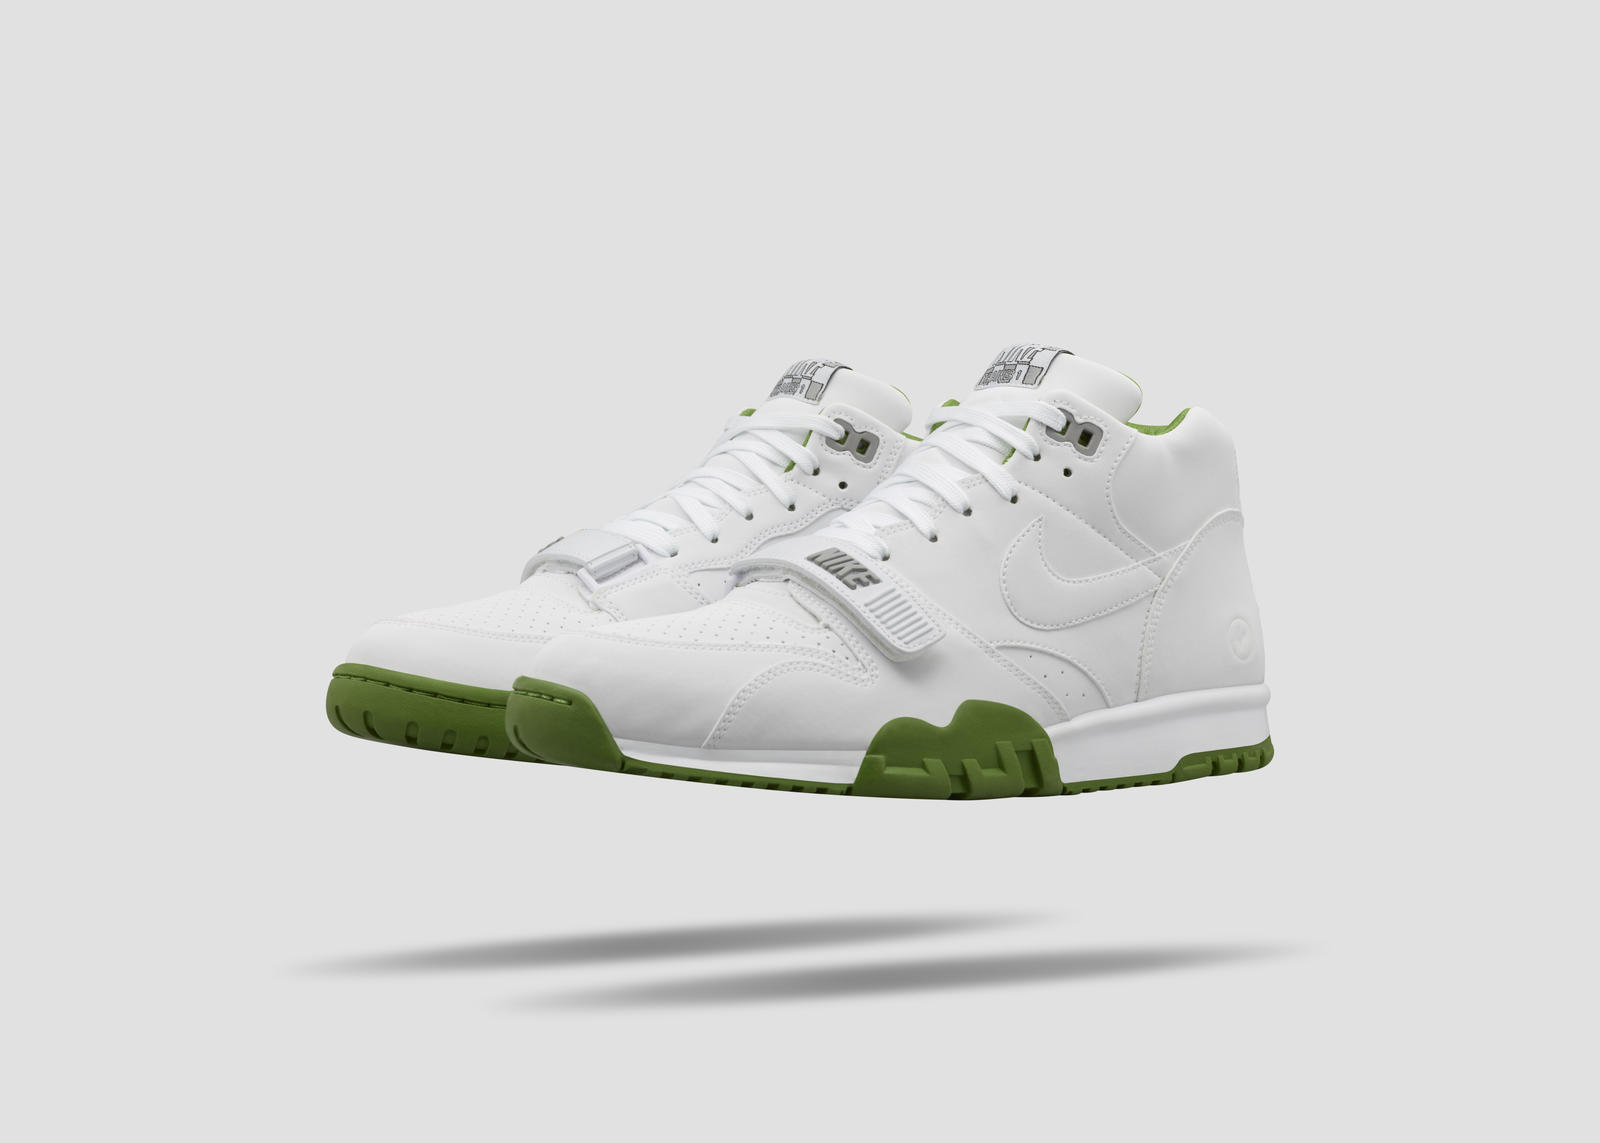 ea3954aaba95a0 Going Green  NikeCourt Air Trainer 1 Mid x fragment - Nike News